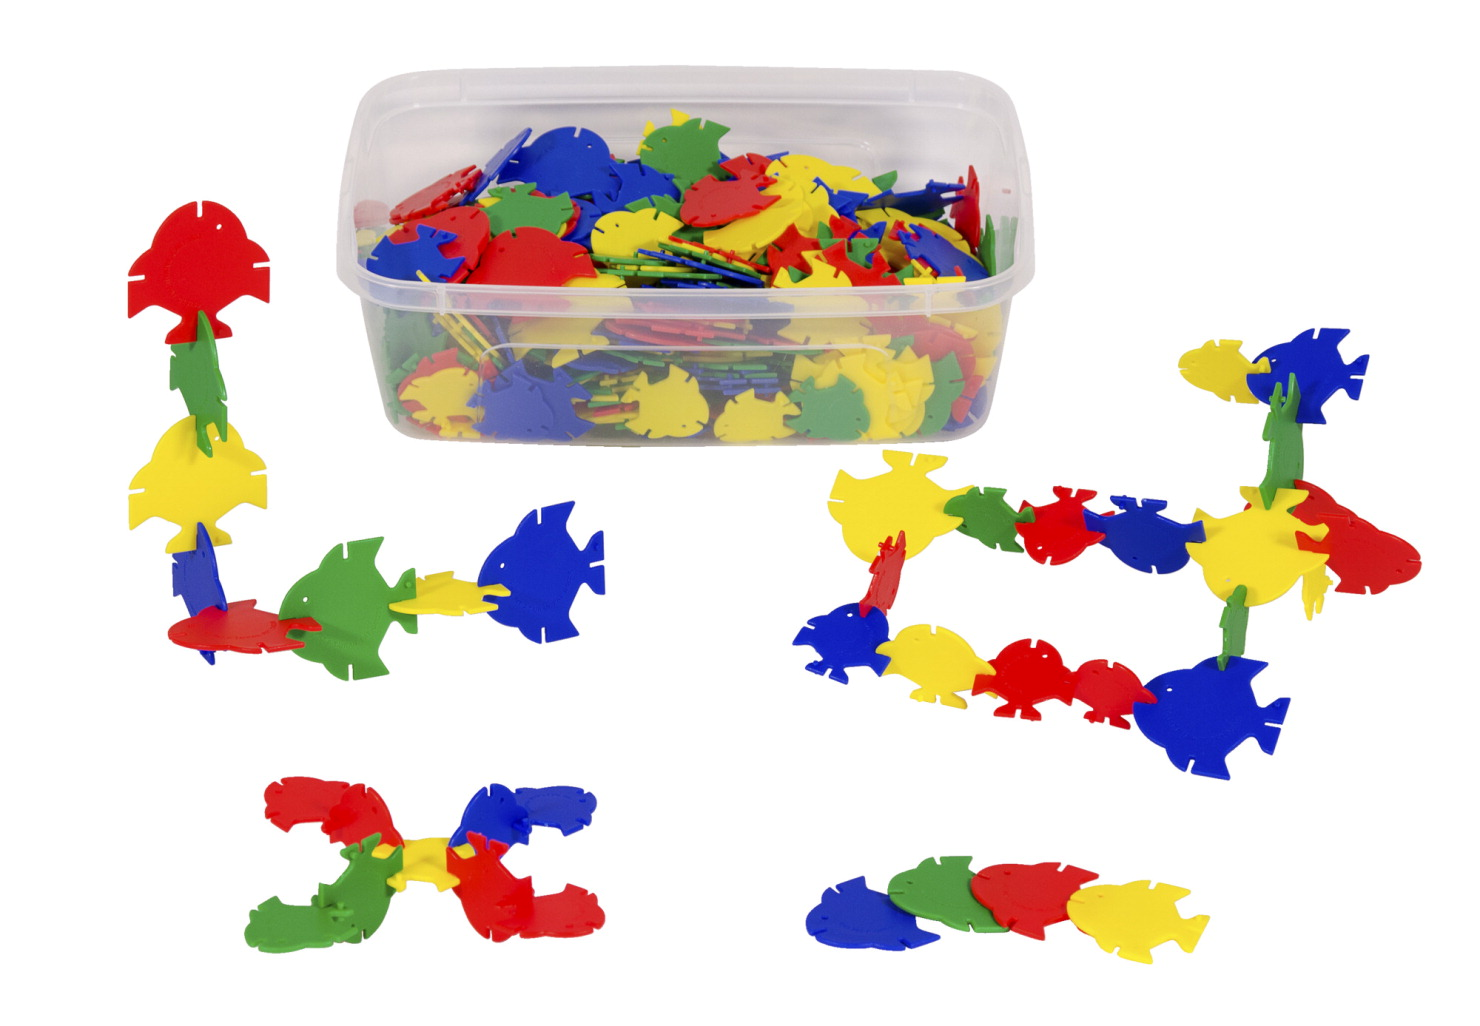 Childcraft Preschool Manipulative Fish Blocks, 420 Pieces and 1 Container